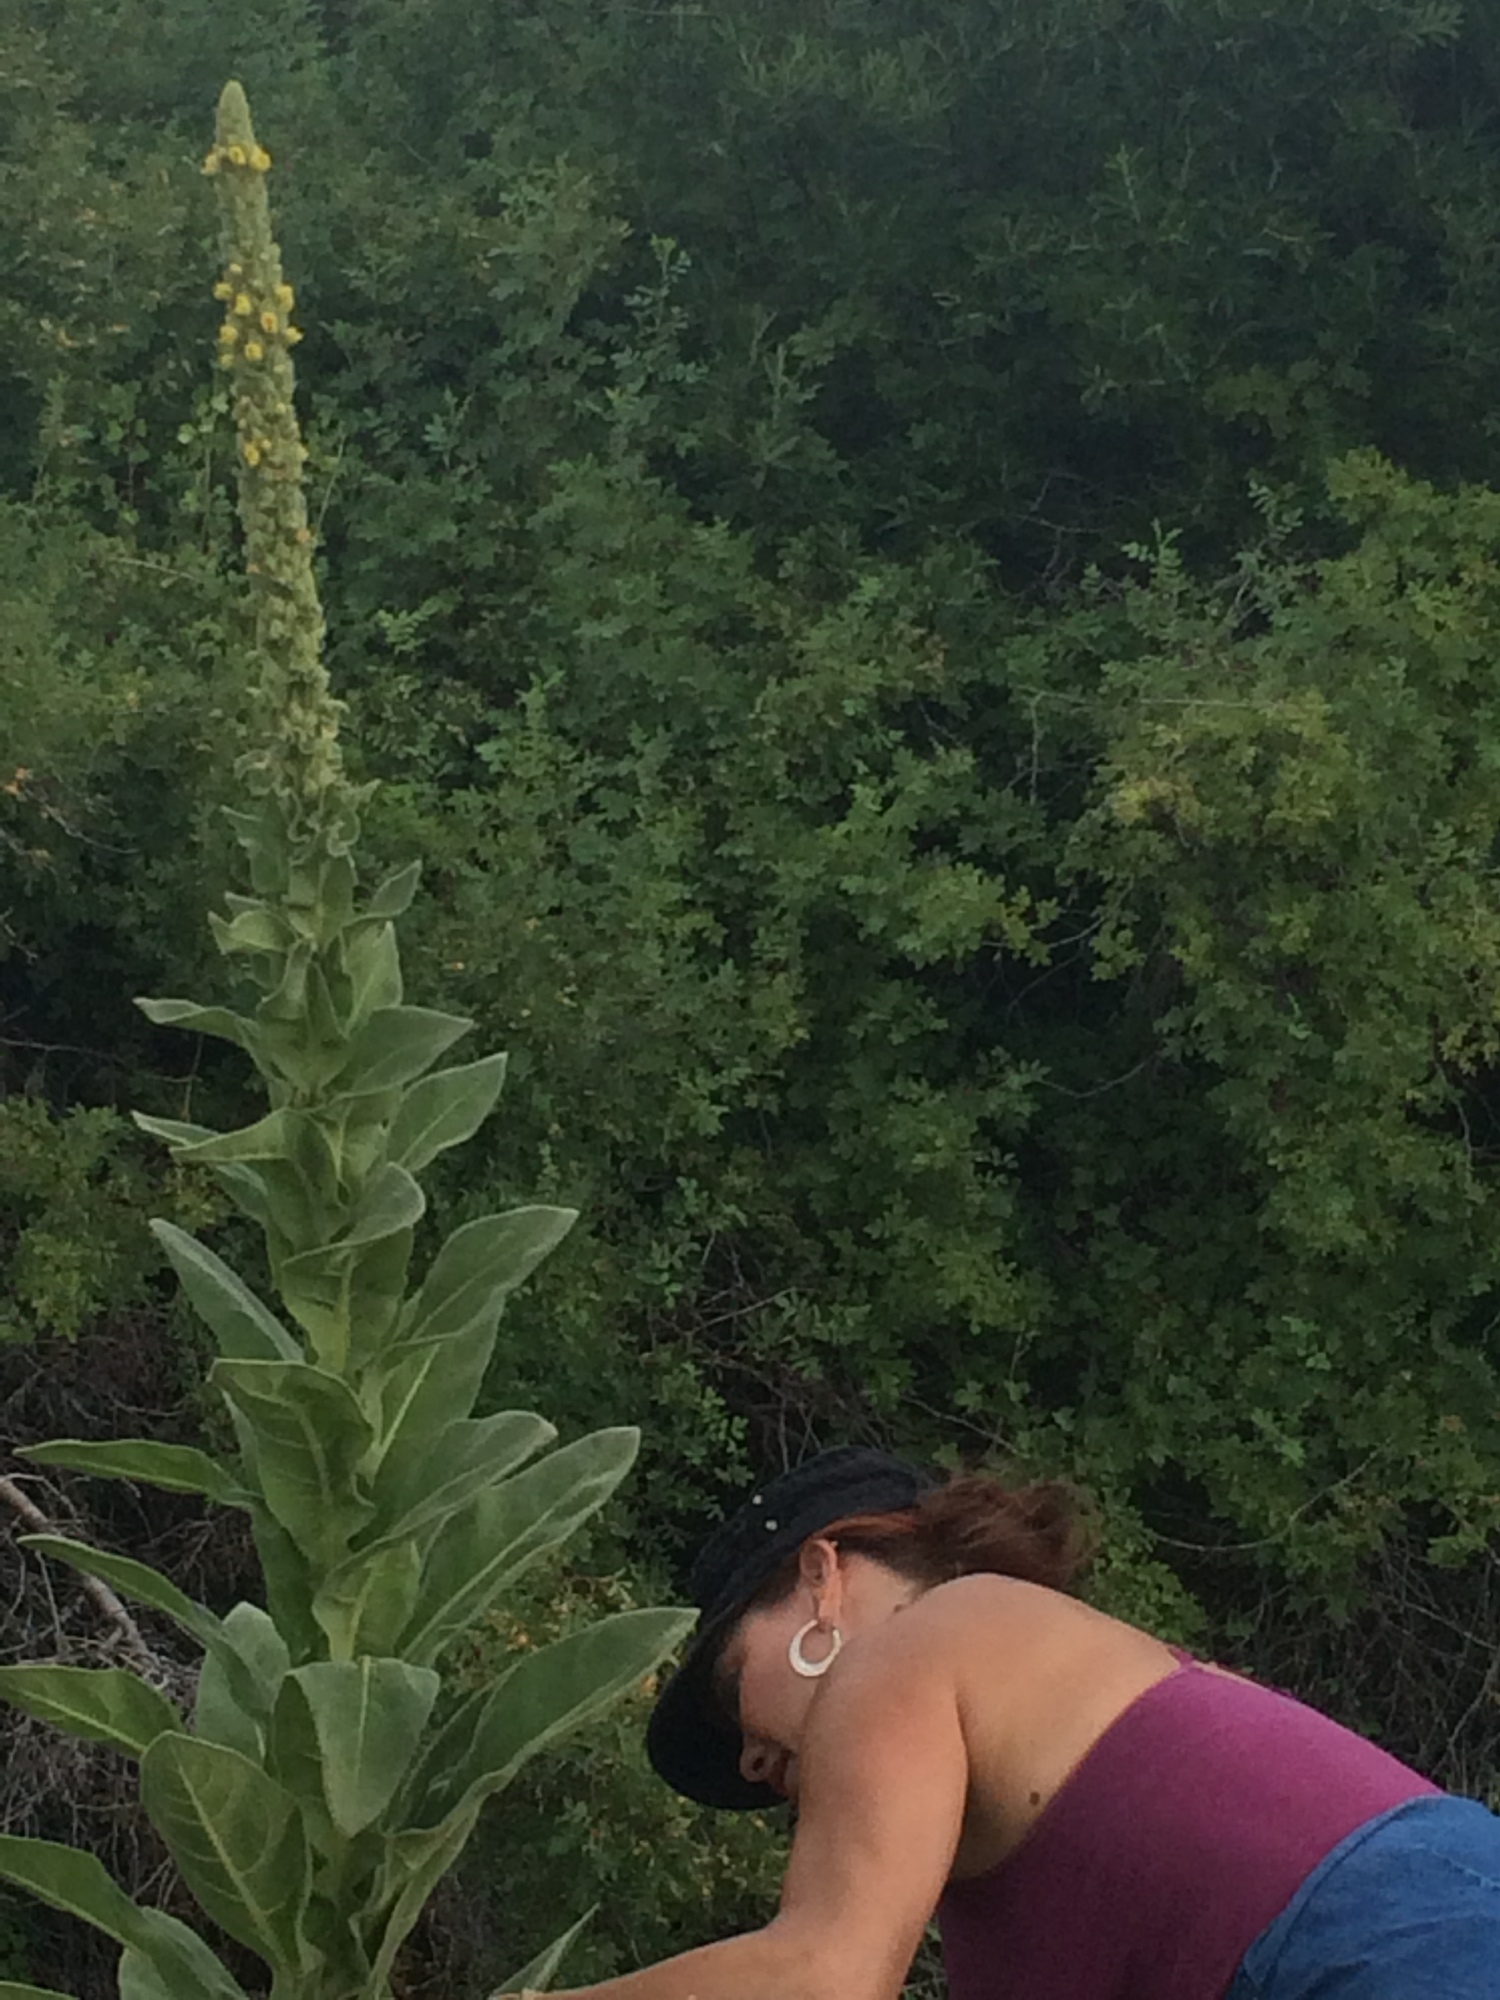 Here, I'm harvesting some mullein from a nearby stream bed. But you can purchase dried mullein in bulk from  Starwest Botanicals  (plus all your other herbal and culinary spice needs) if you don't want to go out and find your own.